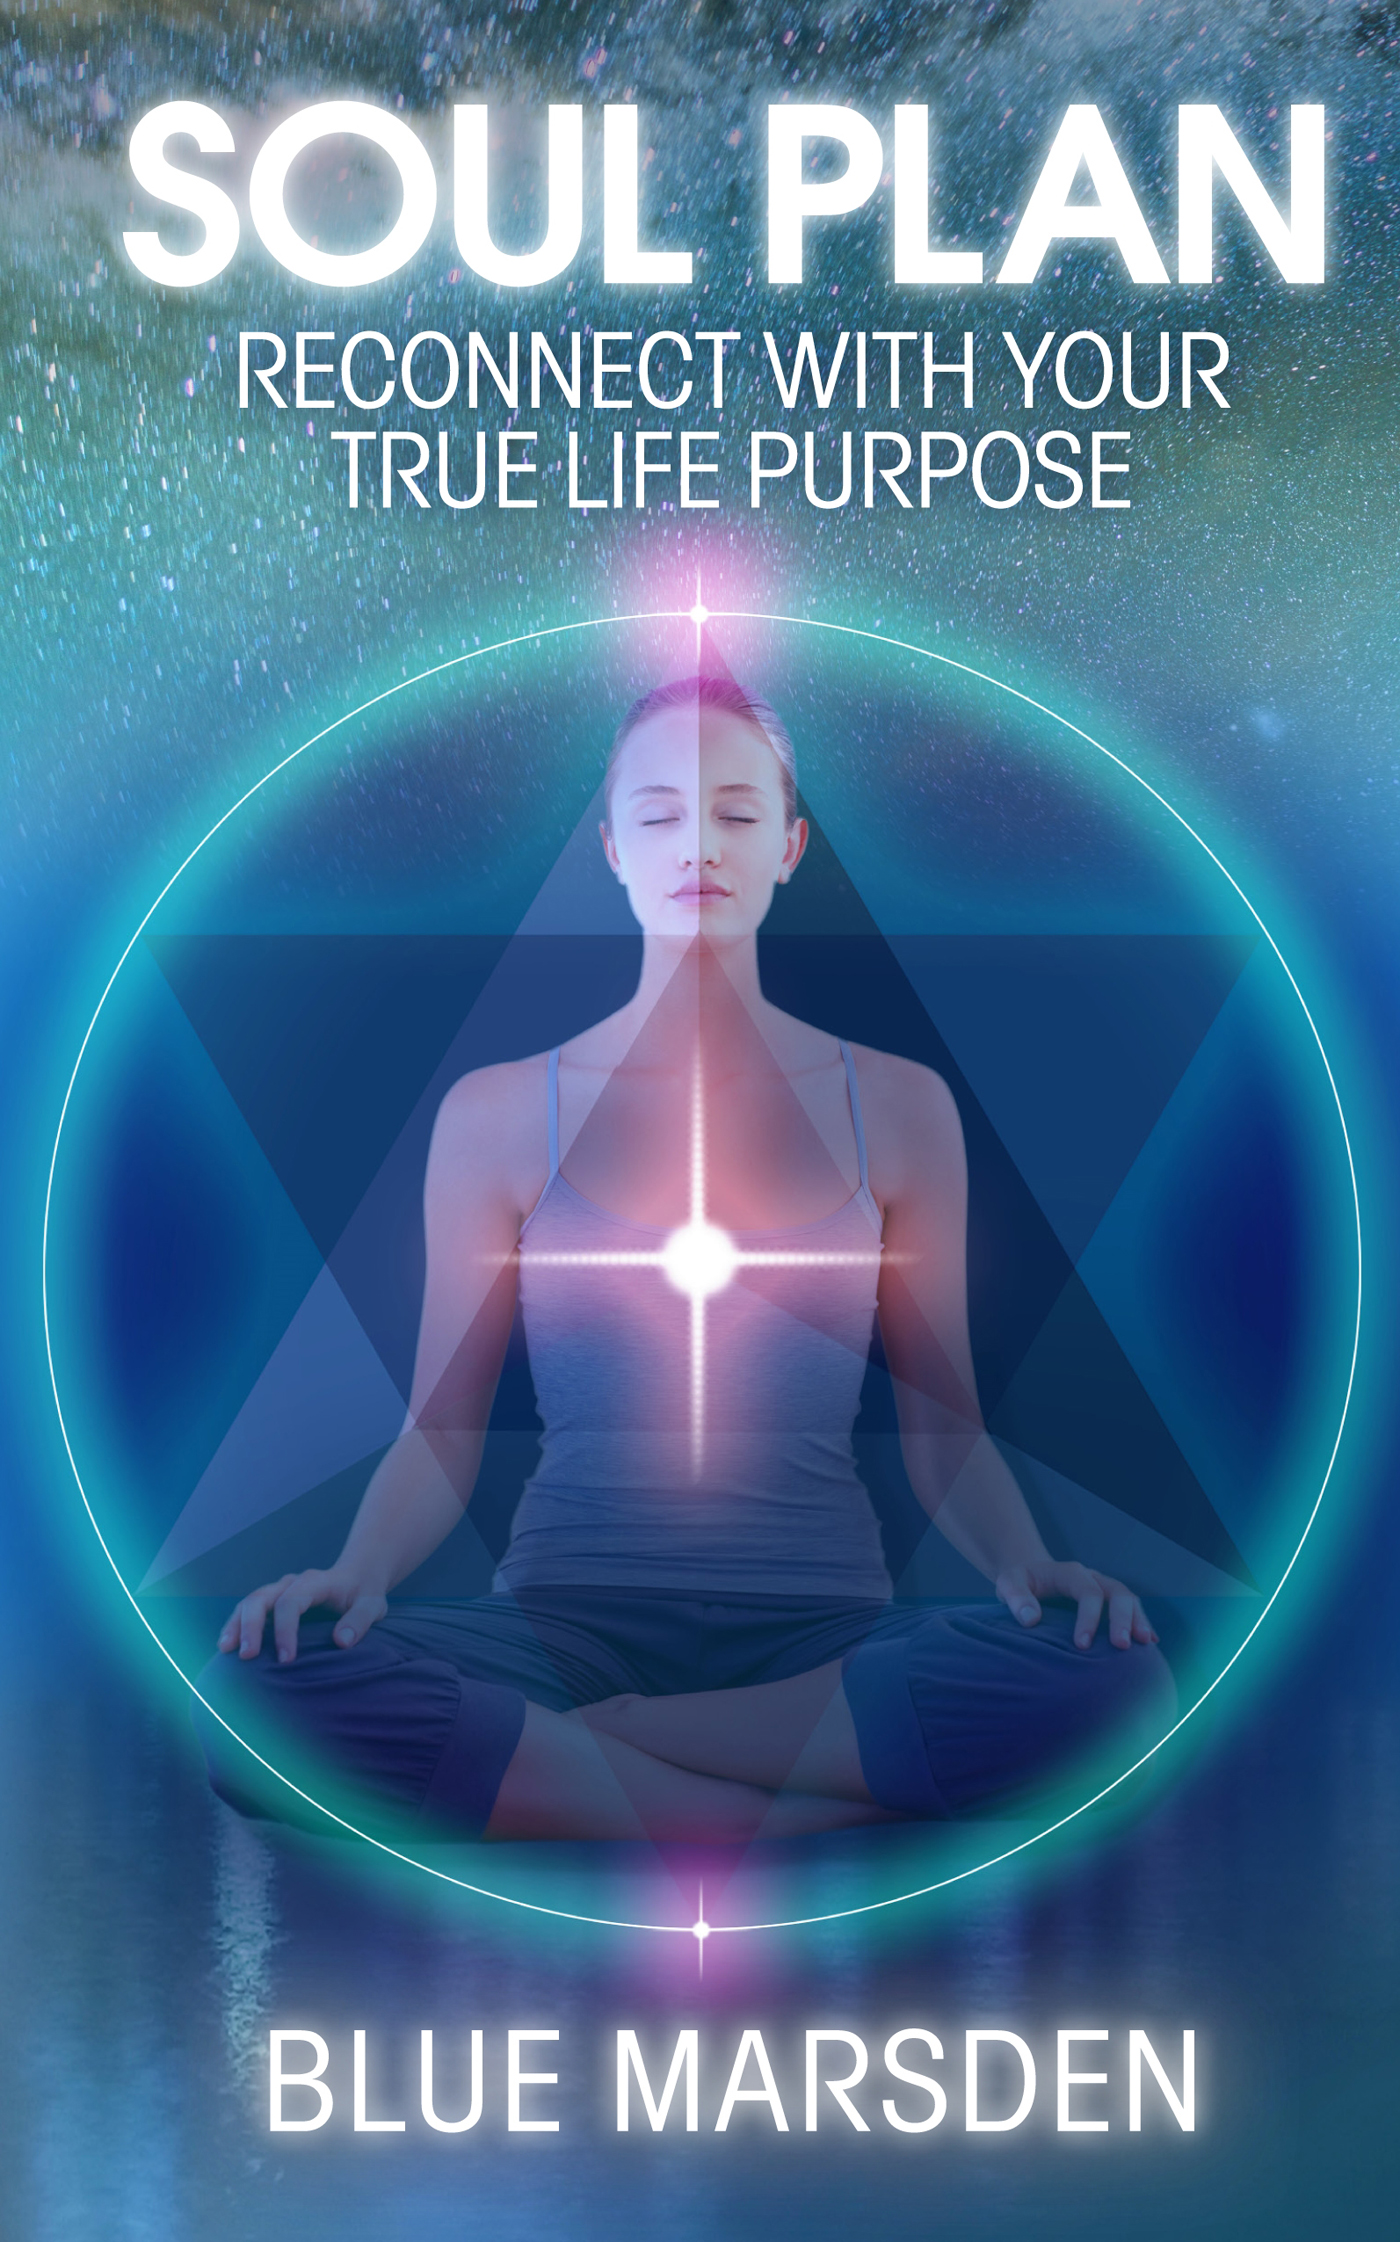 Soul Plan Reconnect with Your True Life Purpose